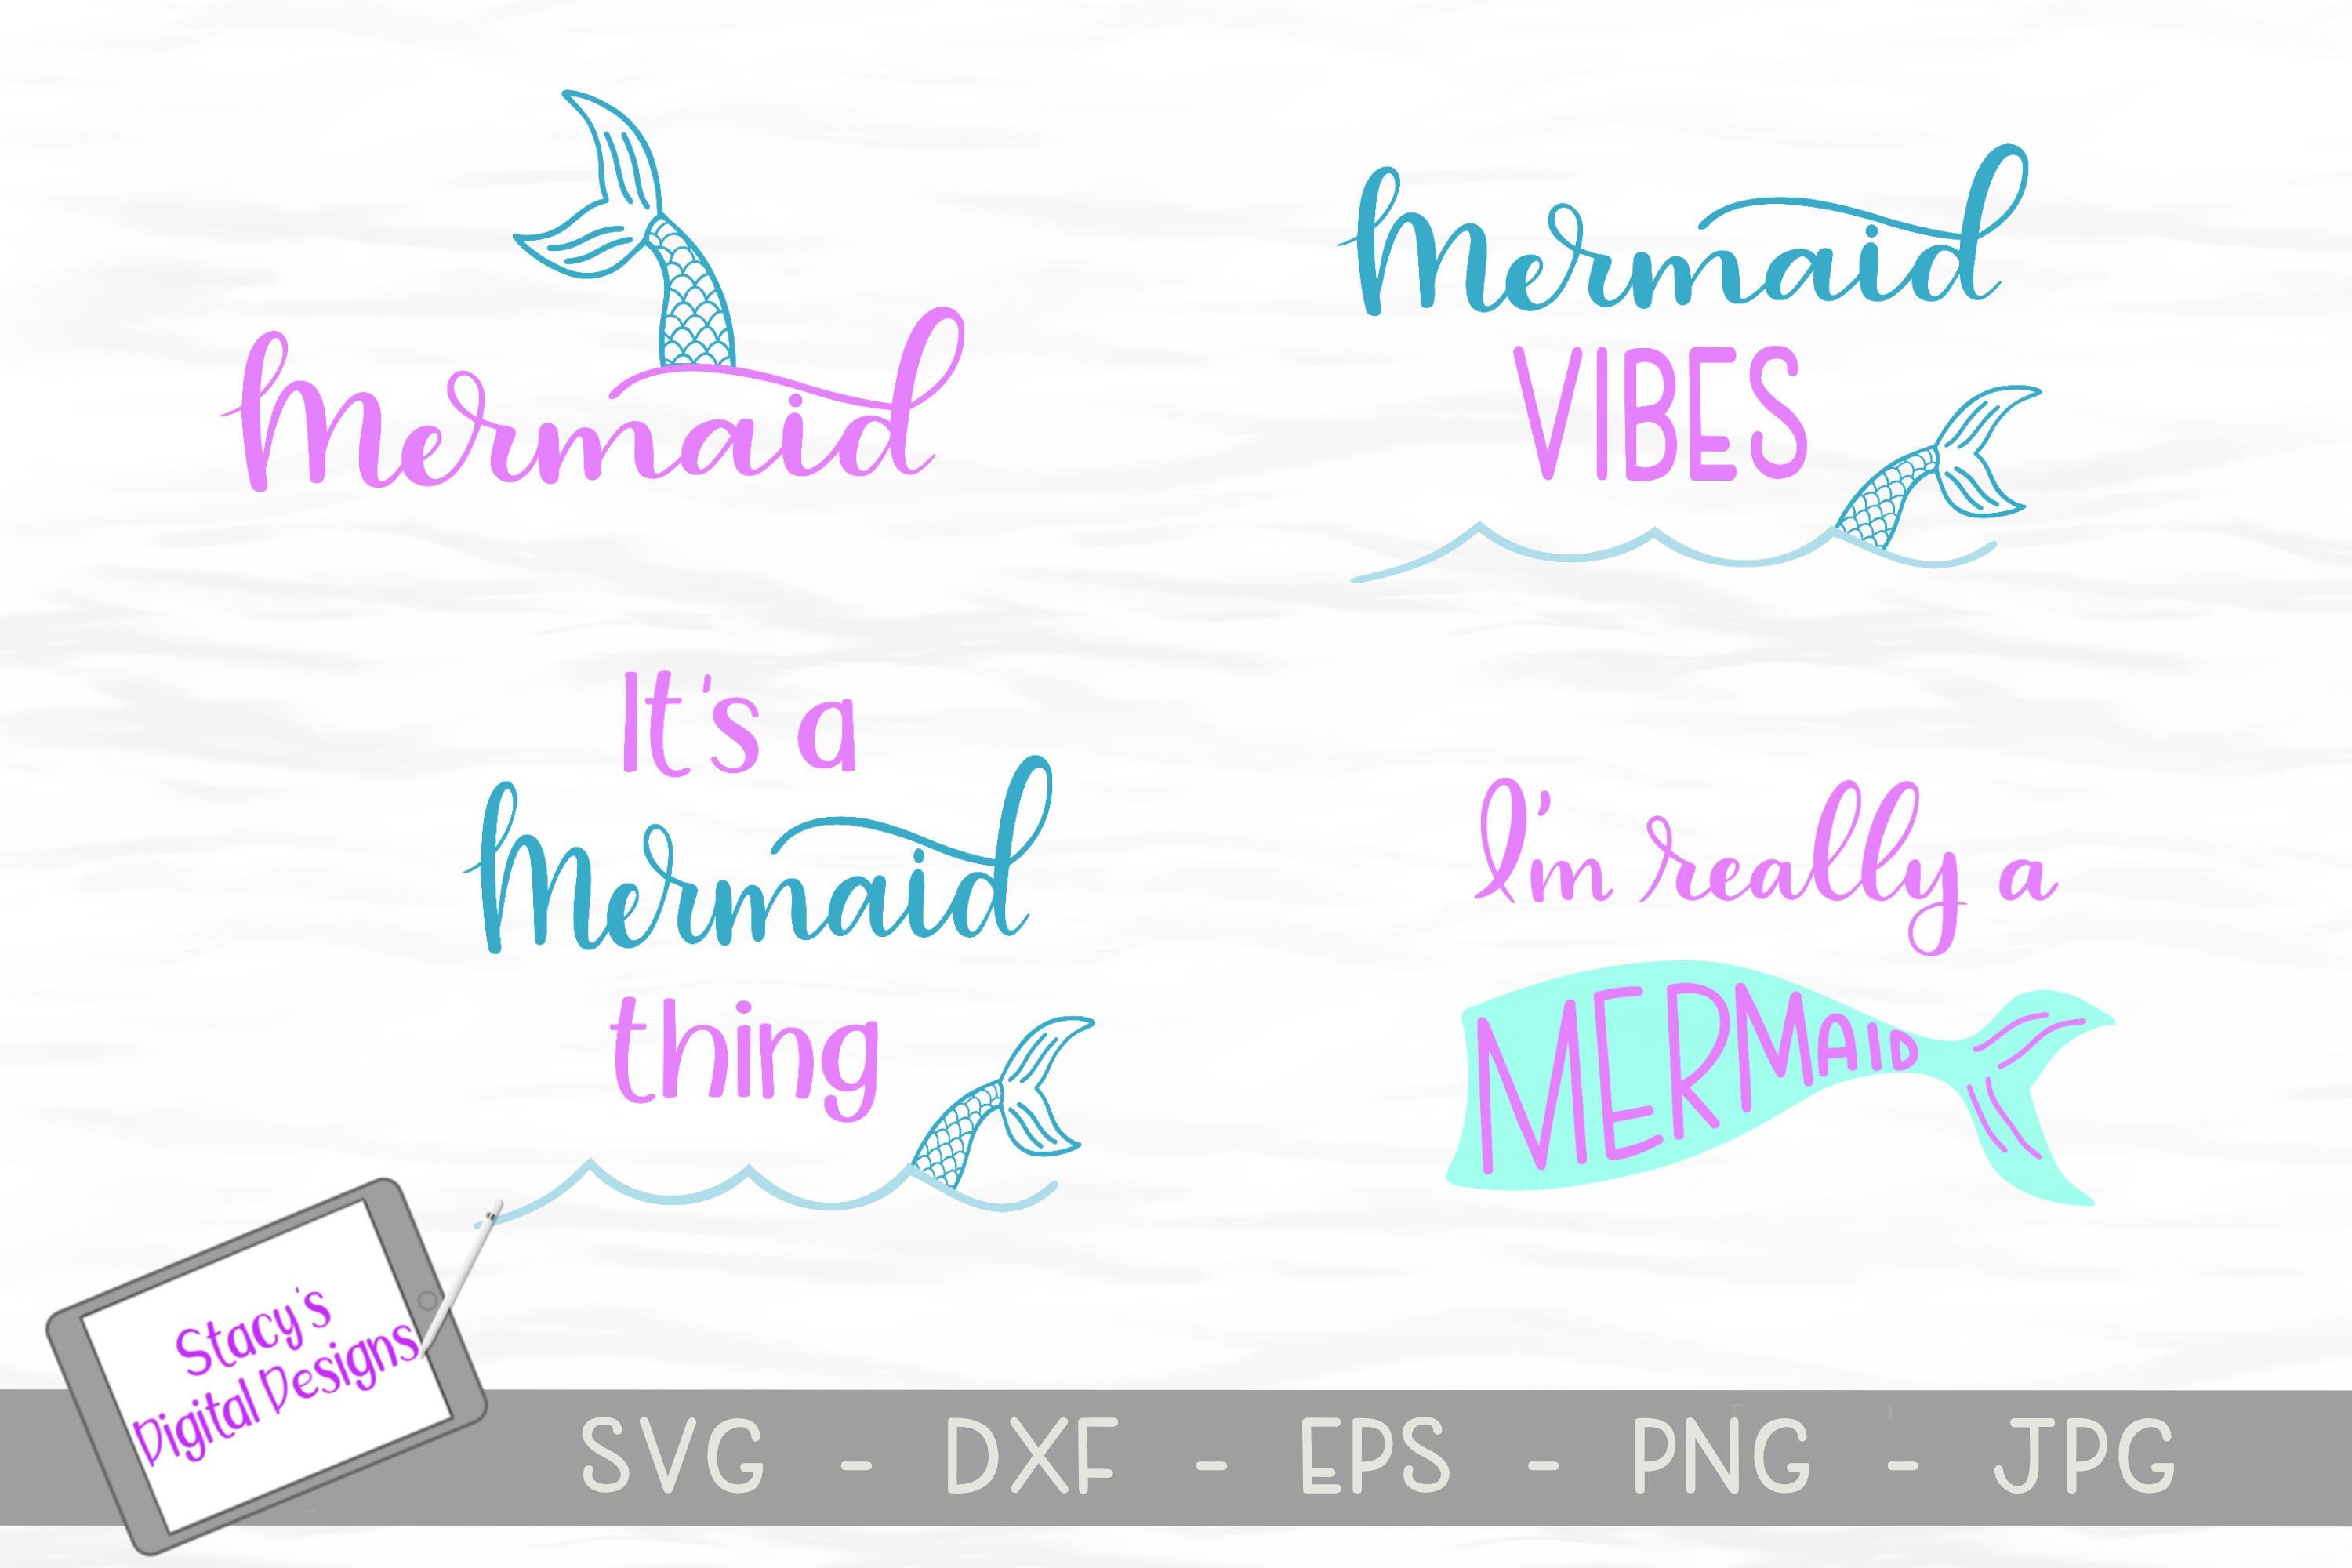 Download Free Mermaid Bundle 4 Designs Graphic By Stacysdigitaldesigns for Cricut Explore, Silhouette and other cutting machines.